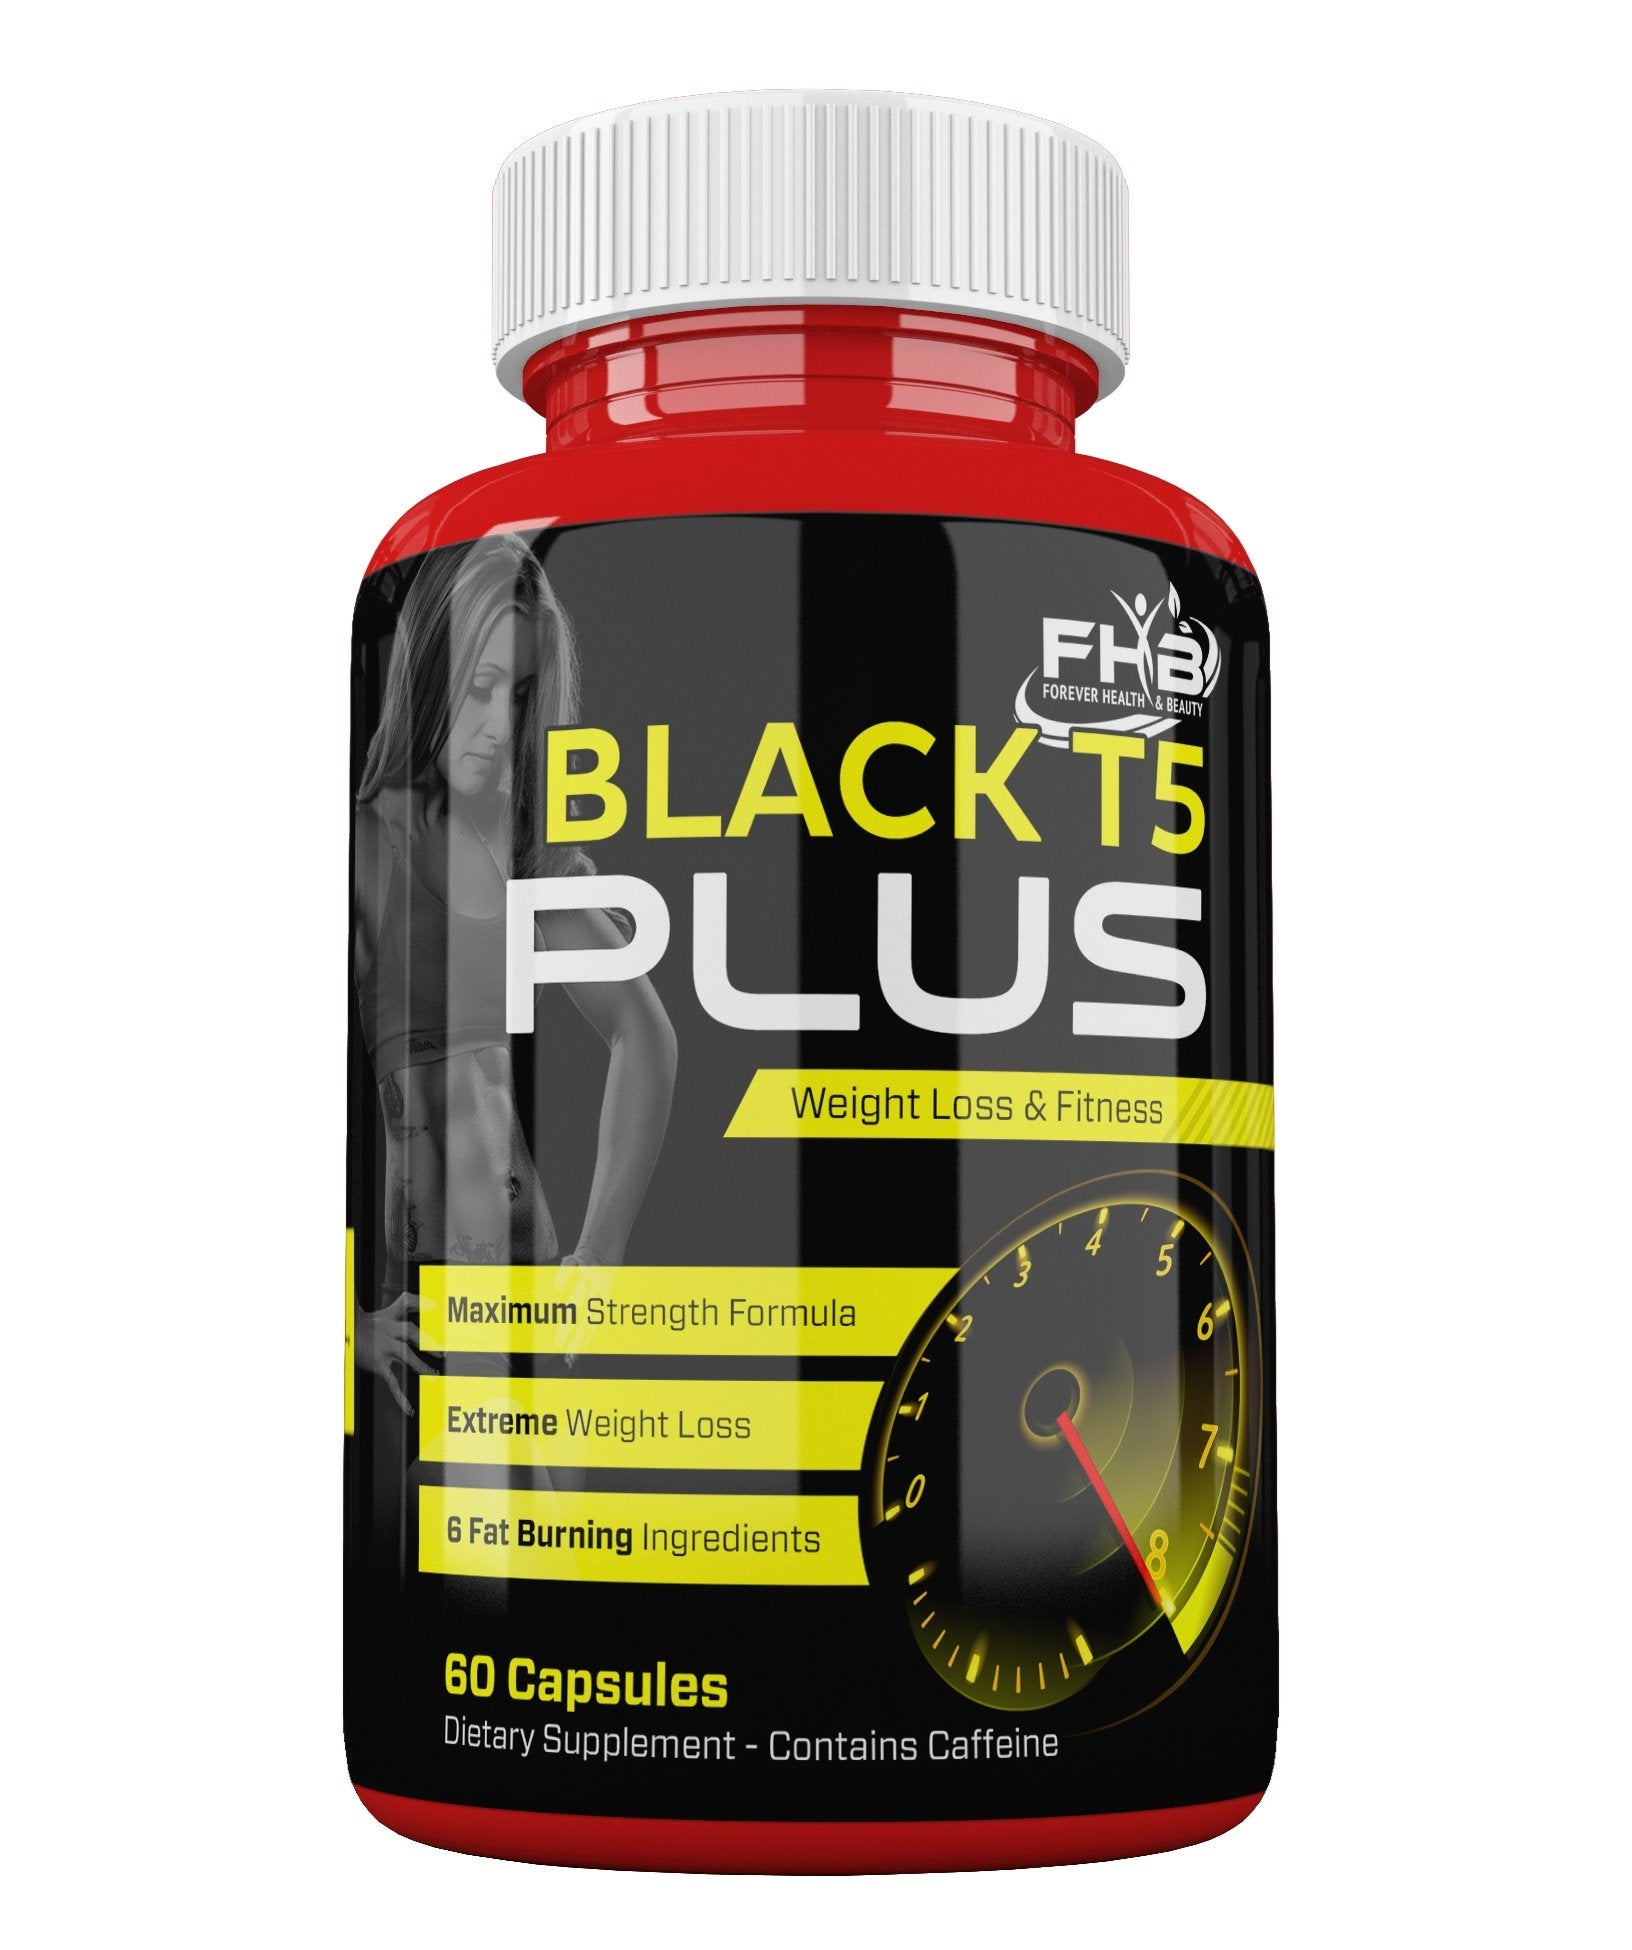 Black T5 Plus Weight Loss & Fitness Maximum Strength Formula - 60 Capsules